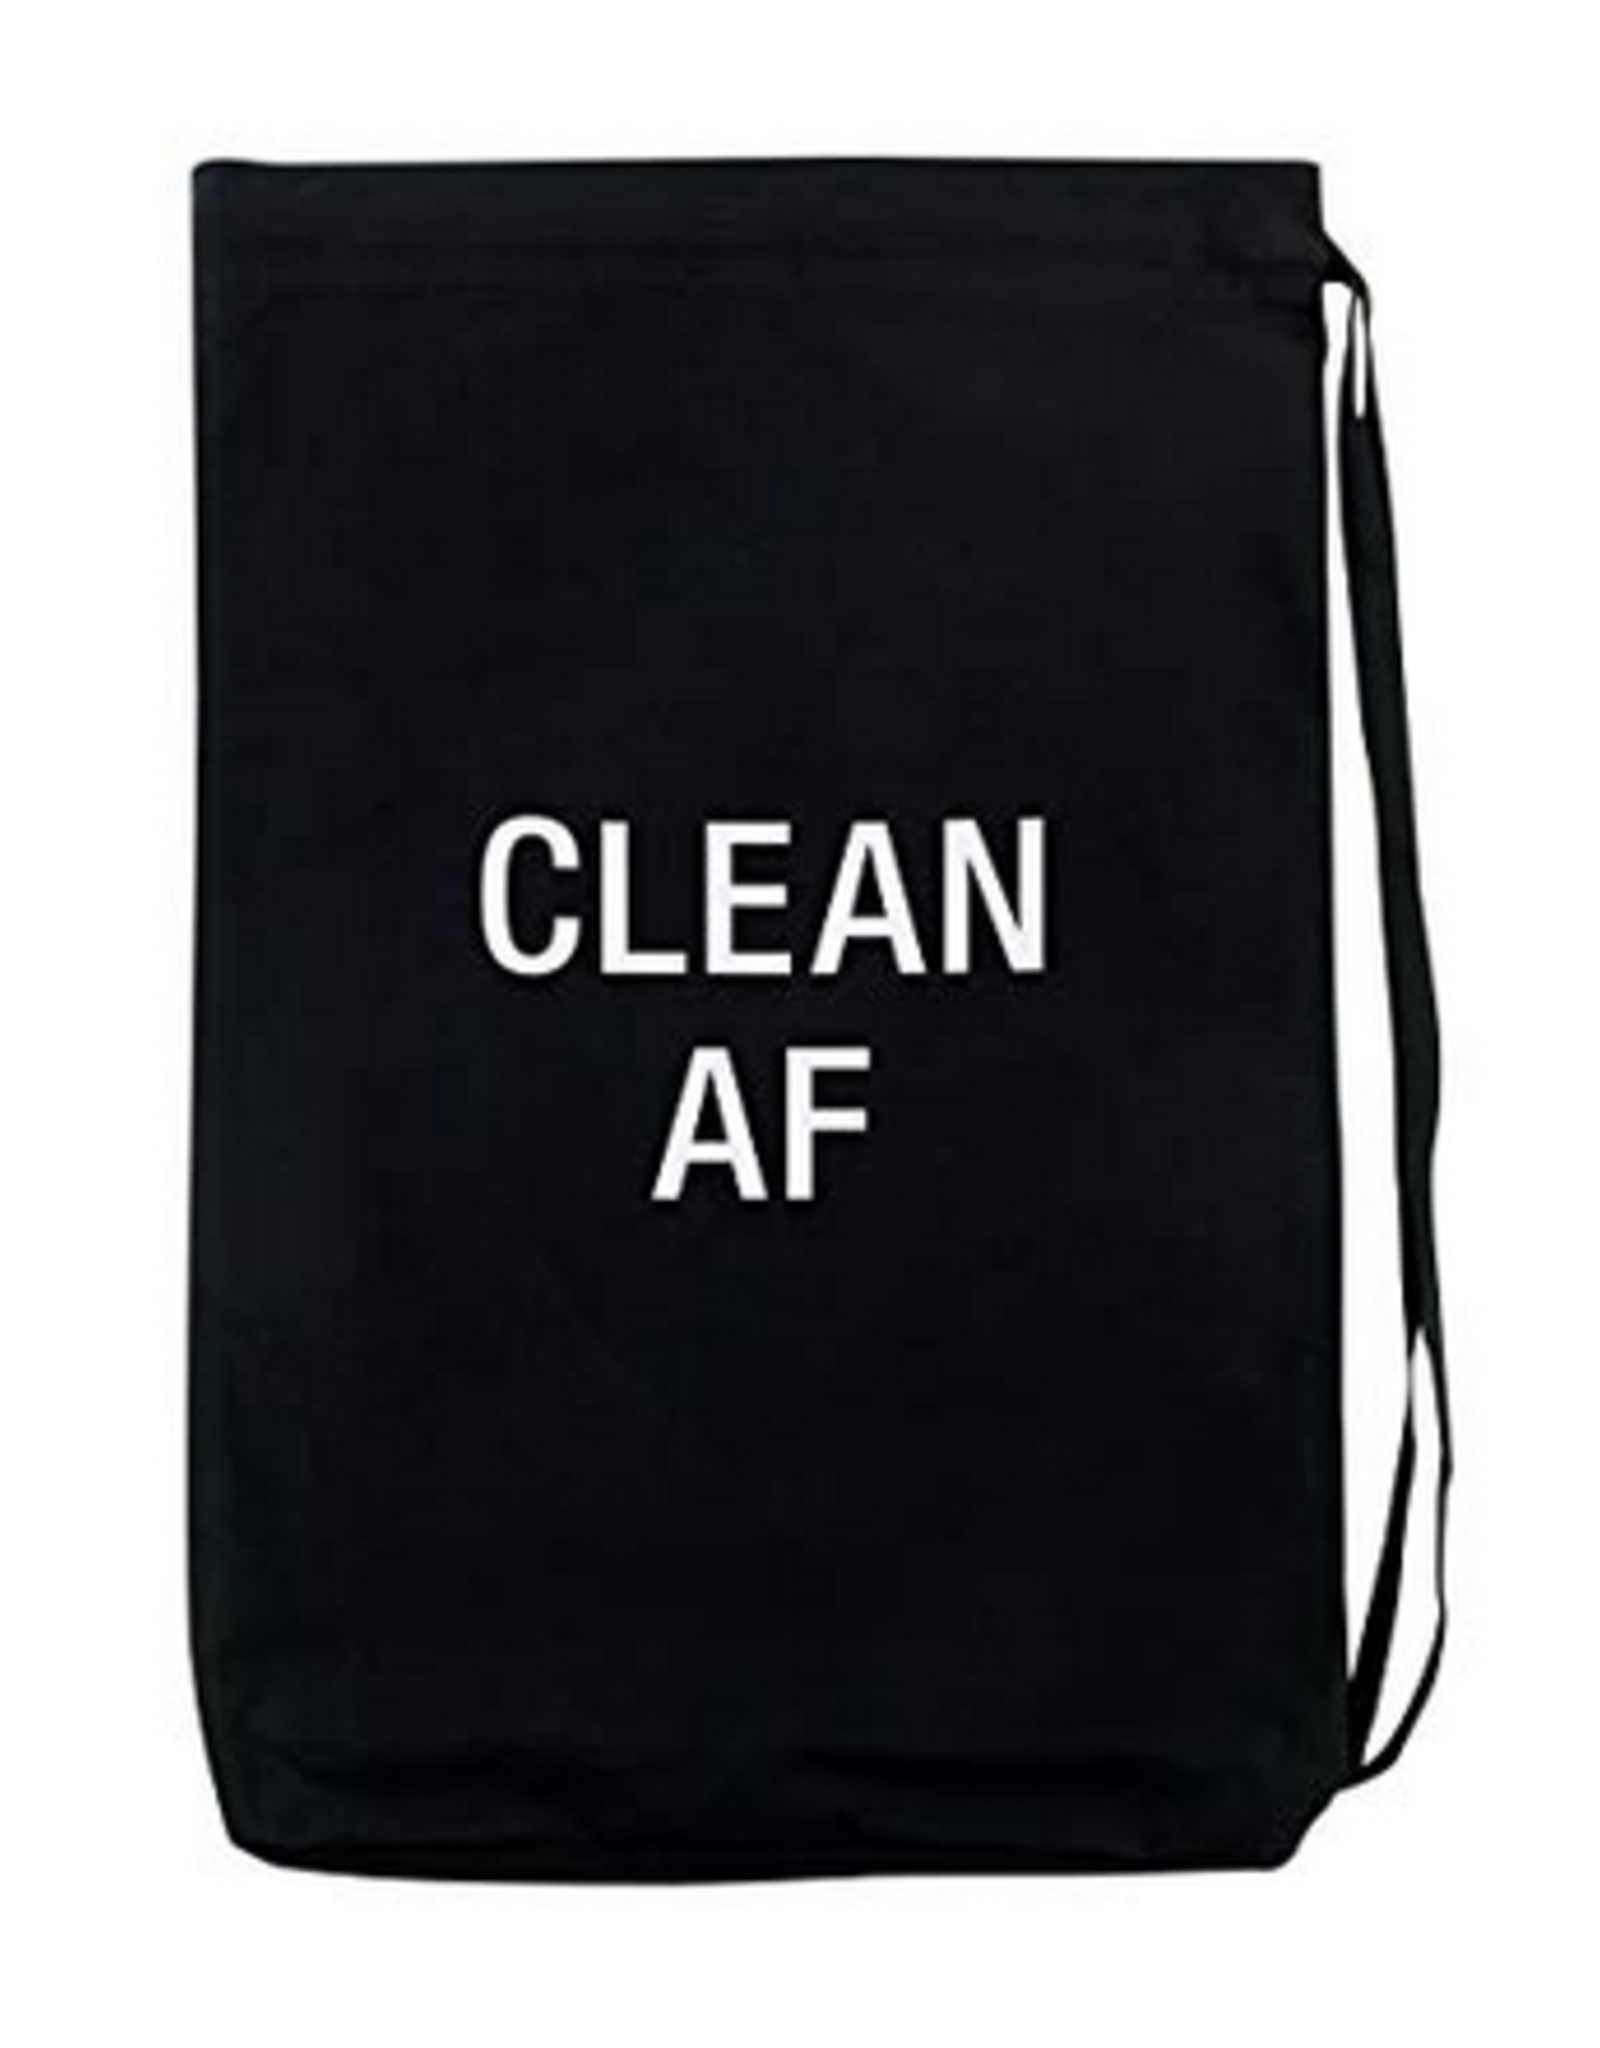 Clean/Dirty AF Laundry Bag